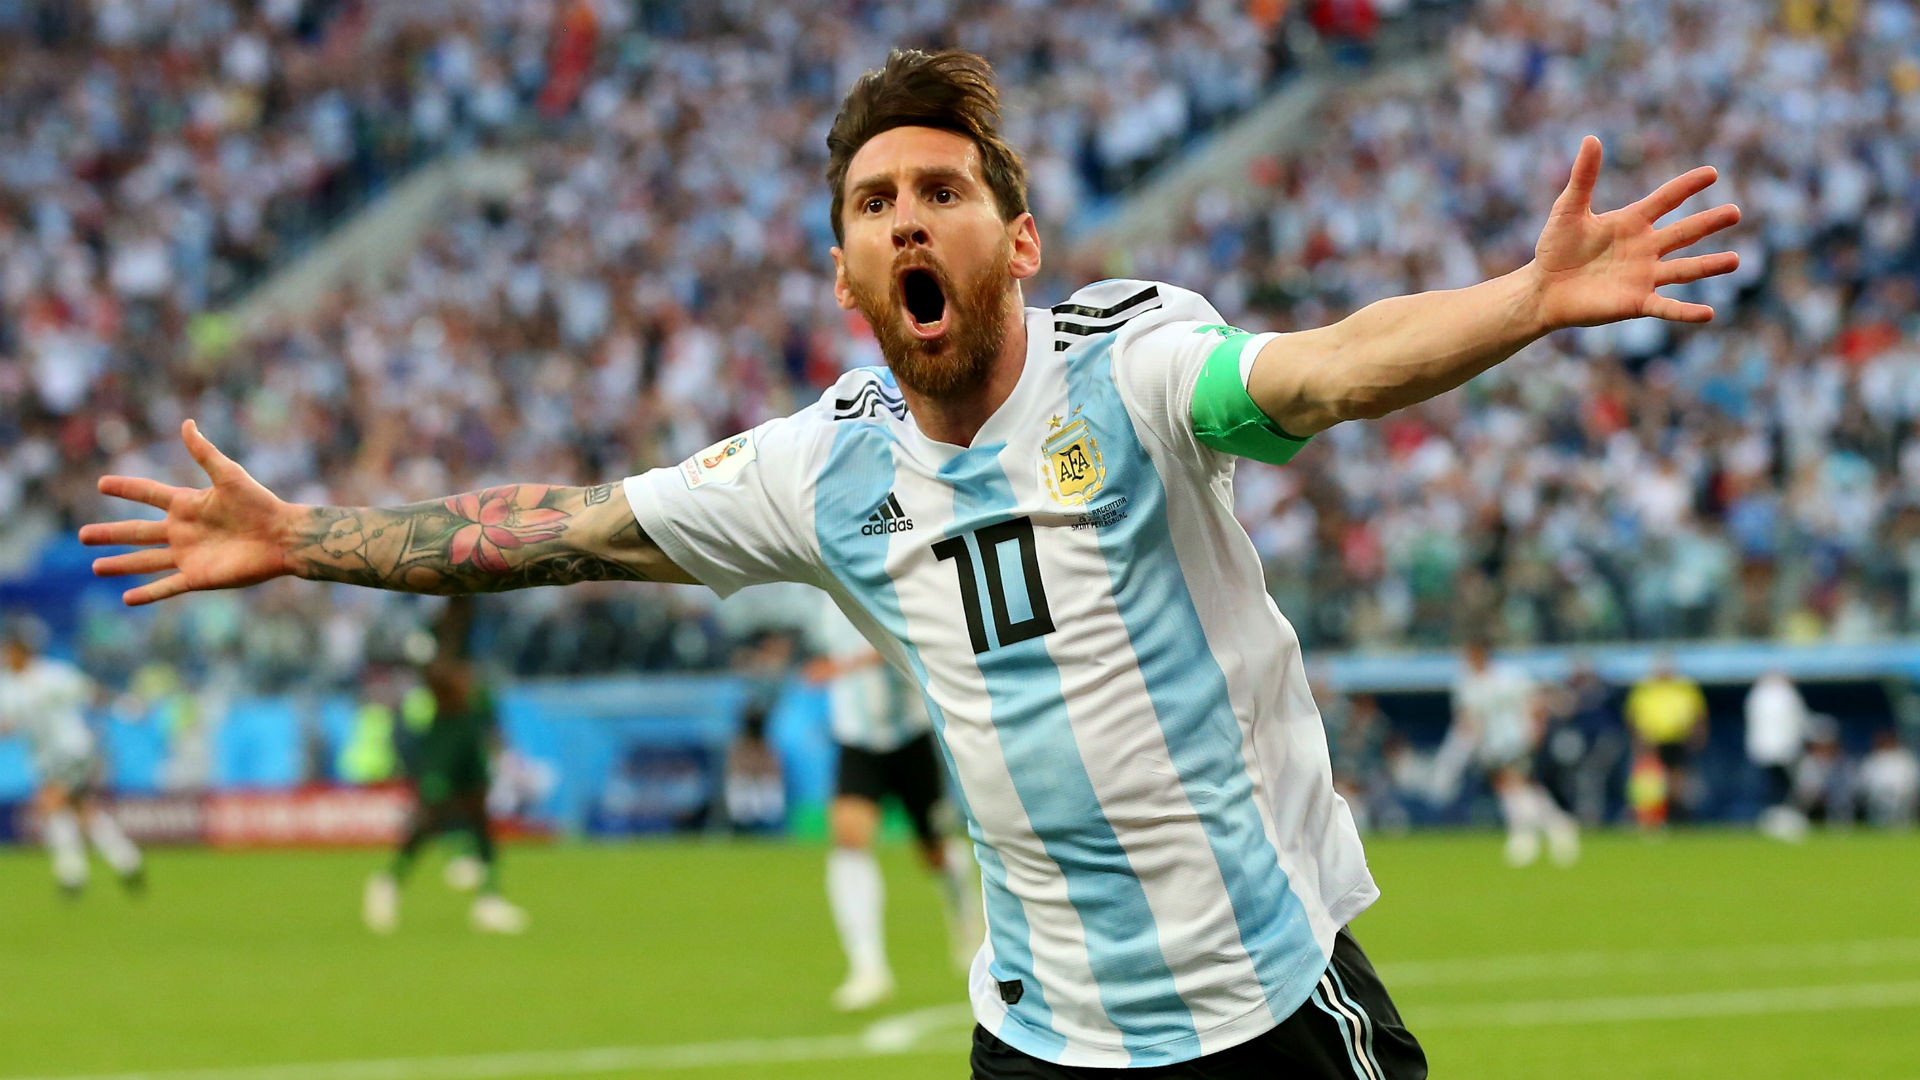 Messi will star for the good of Argentina - Sampaoli